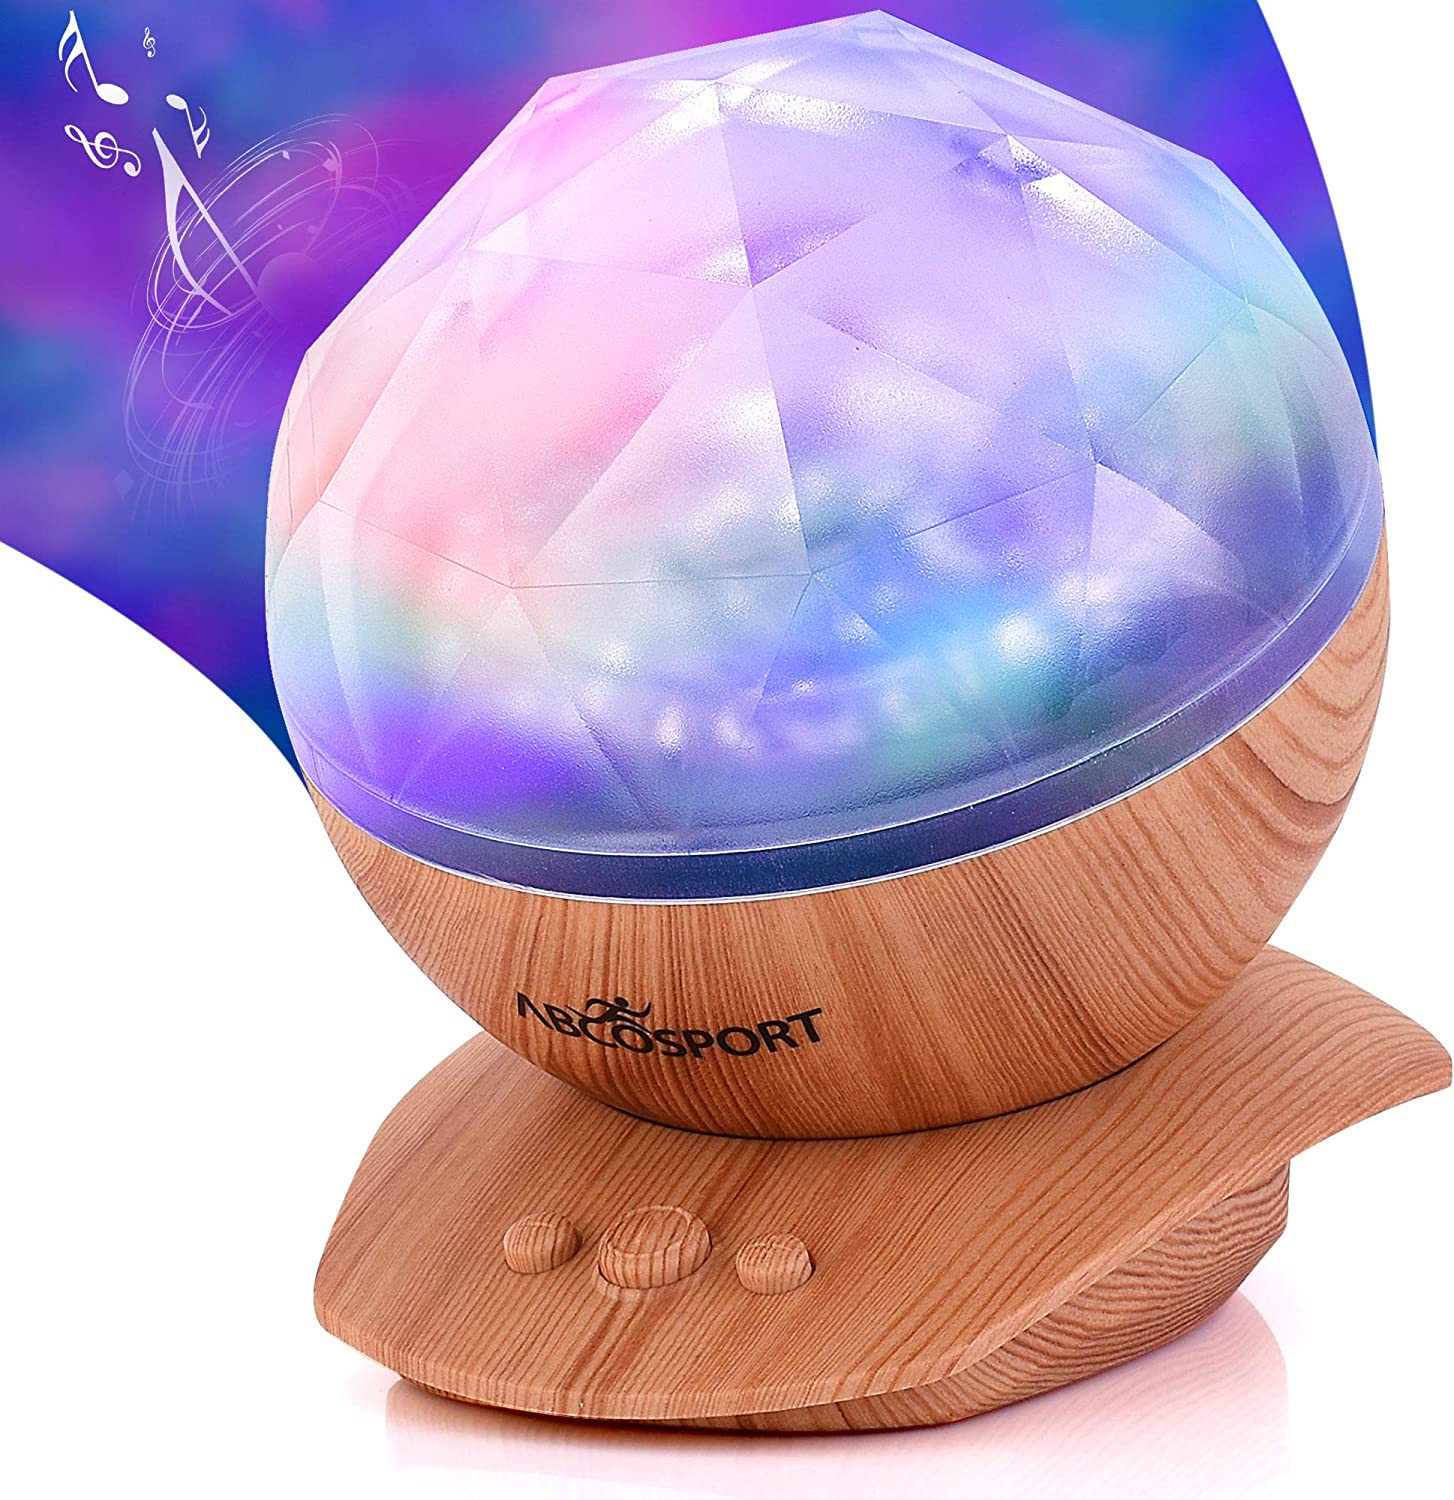 Soothing Aurora Borealis LED Night Light Projector - Music Speaker - Chic Wood Texture Furniture Look - 45 Degree Tilt - 8 Light Modes - Relaxing Ocean Wave Projector for Babies, Kids, and Adults